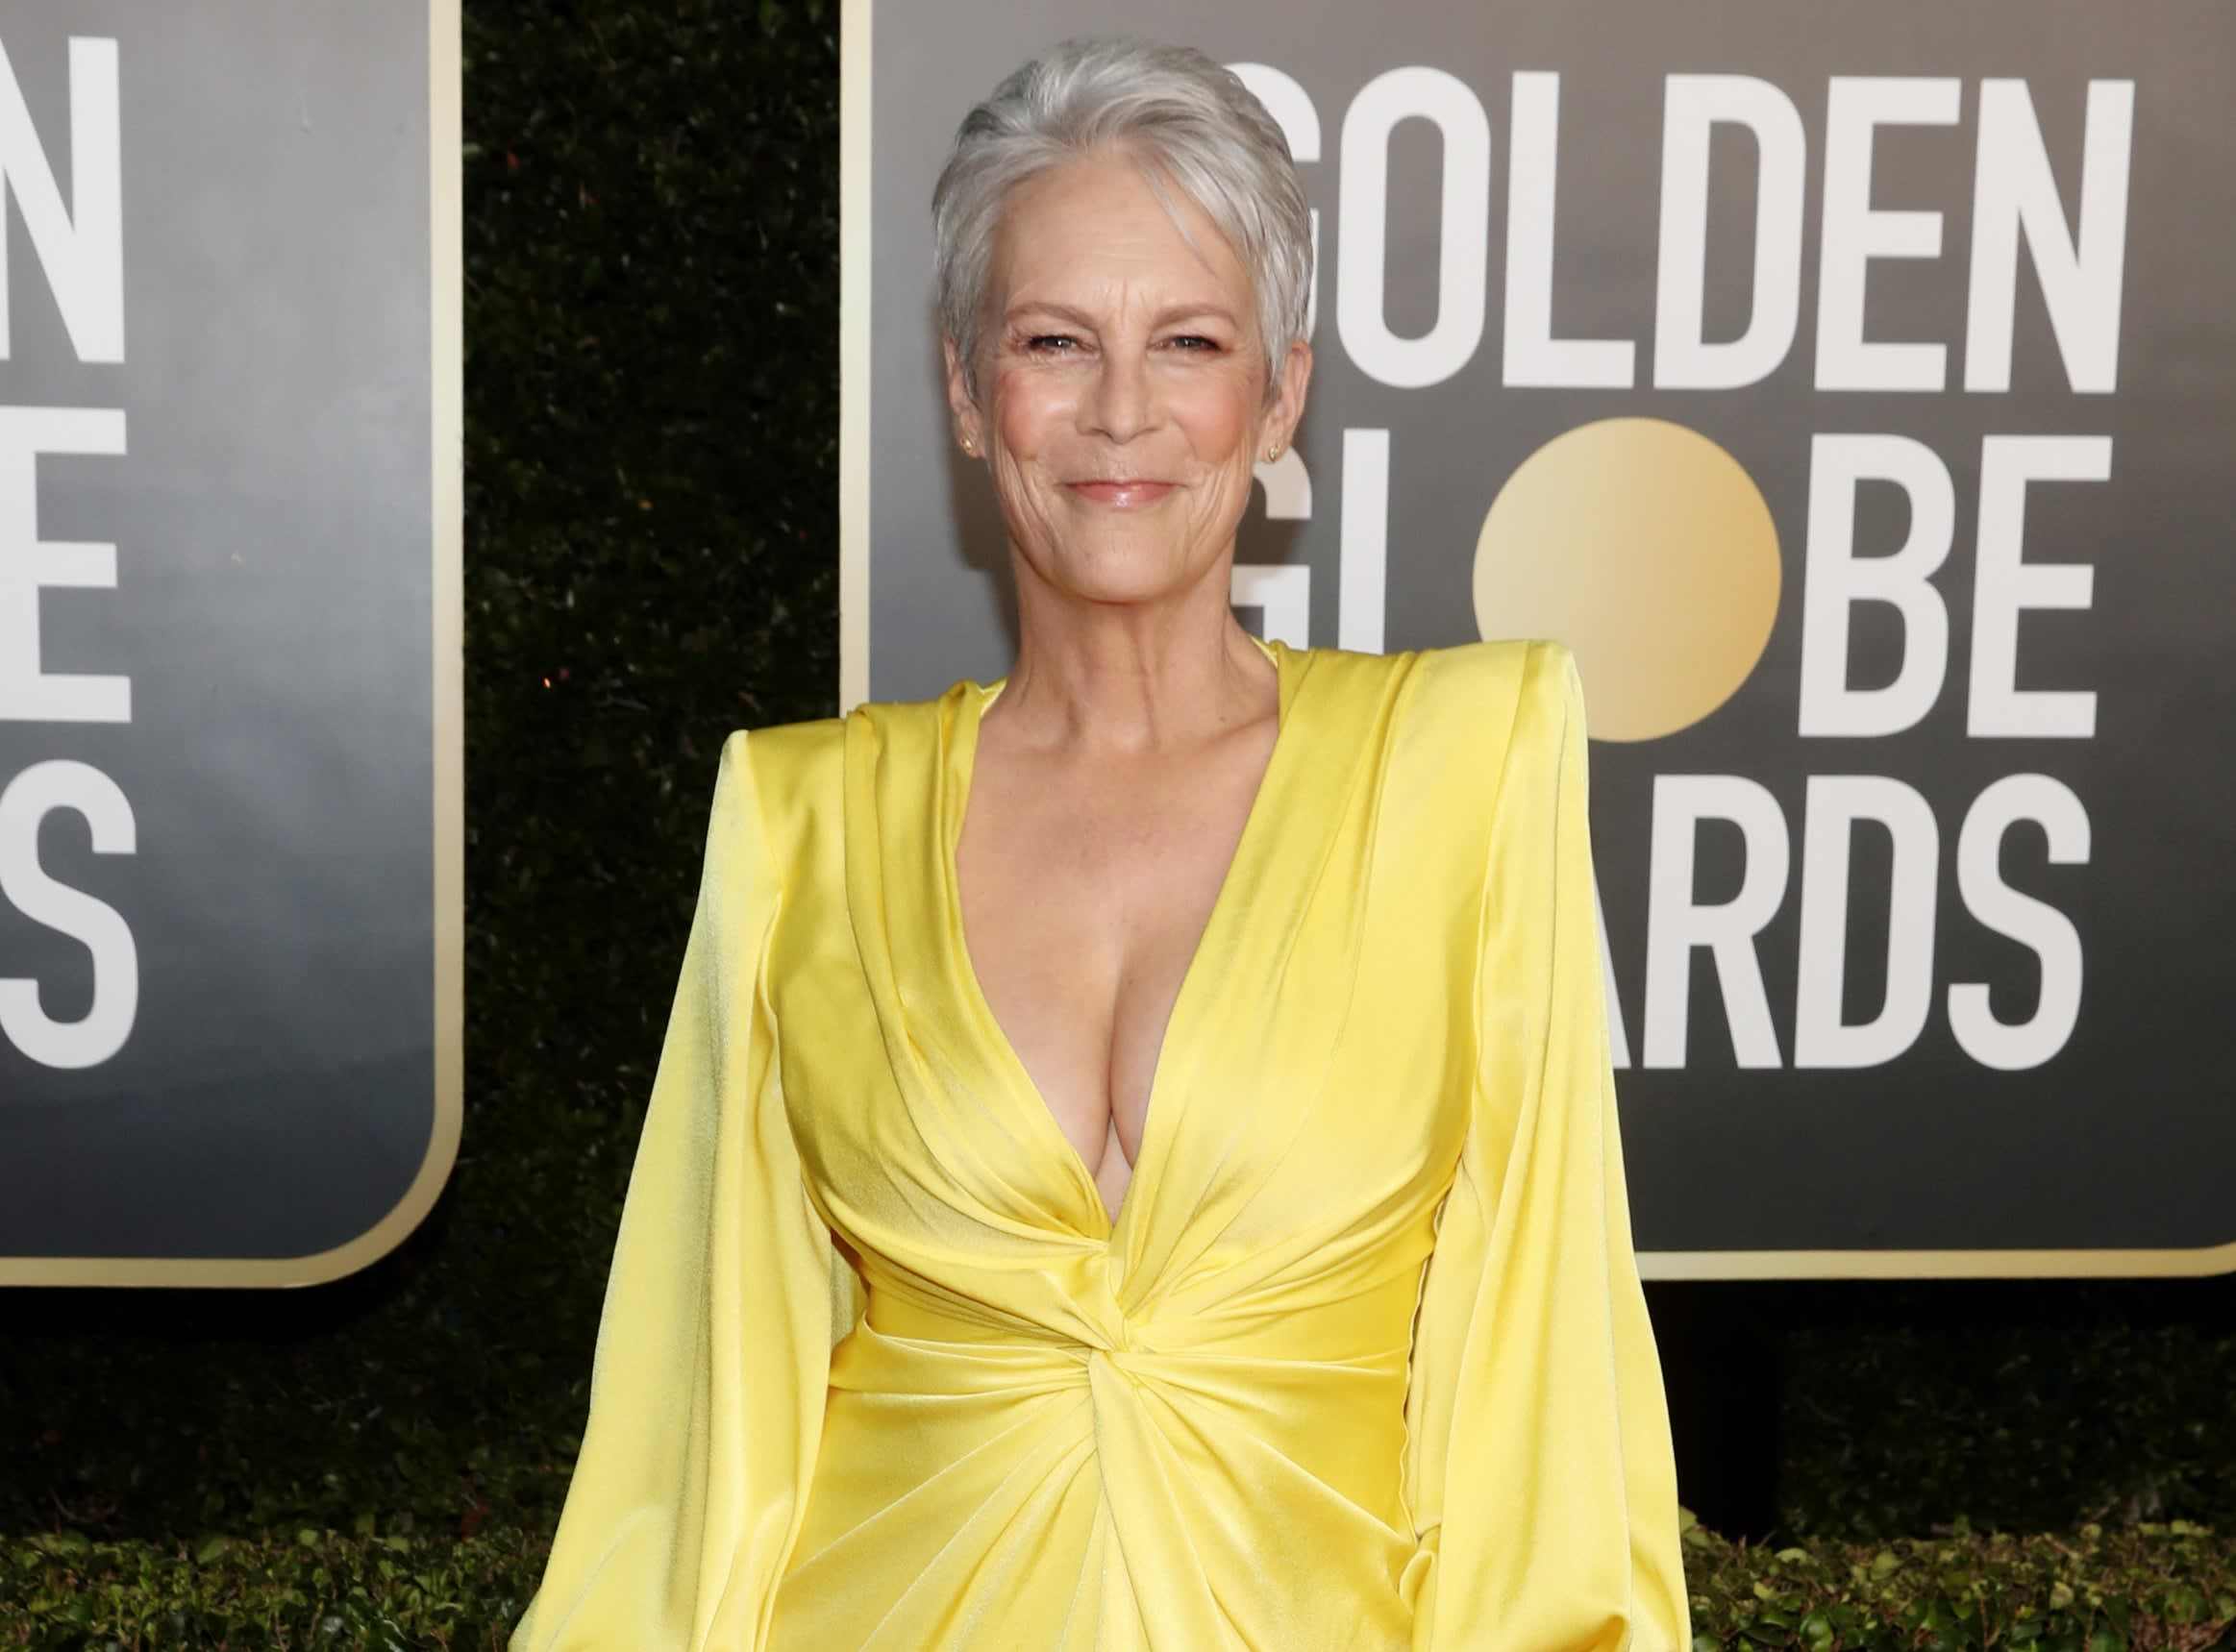 Jamie smiles while wearing a yellow dress with long sleeves and deep v neck